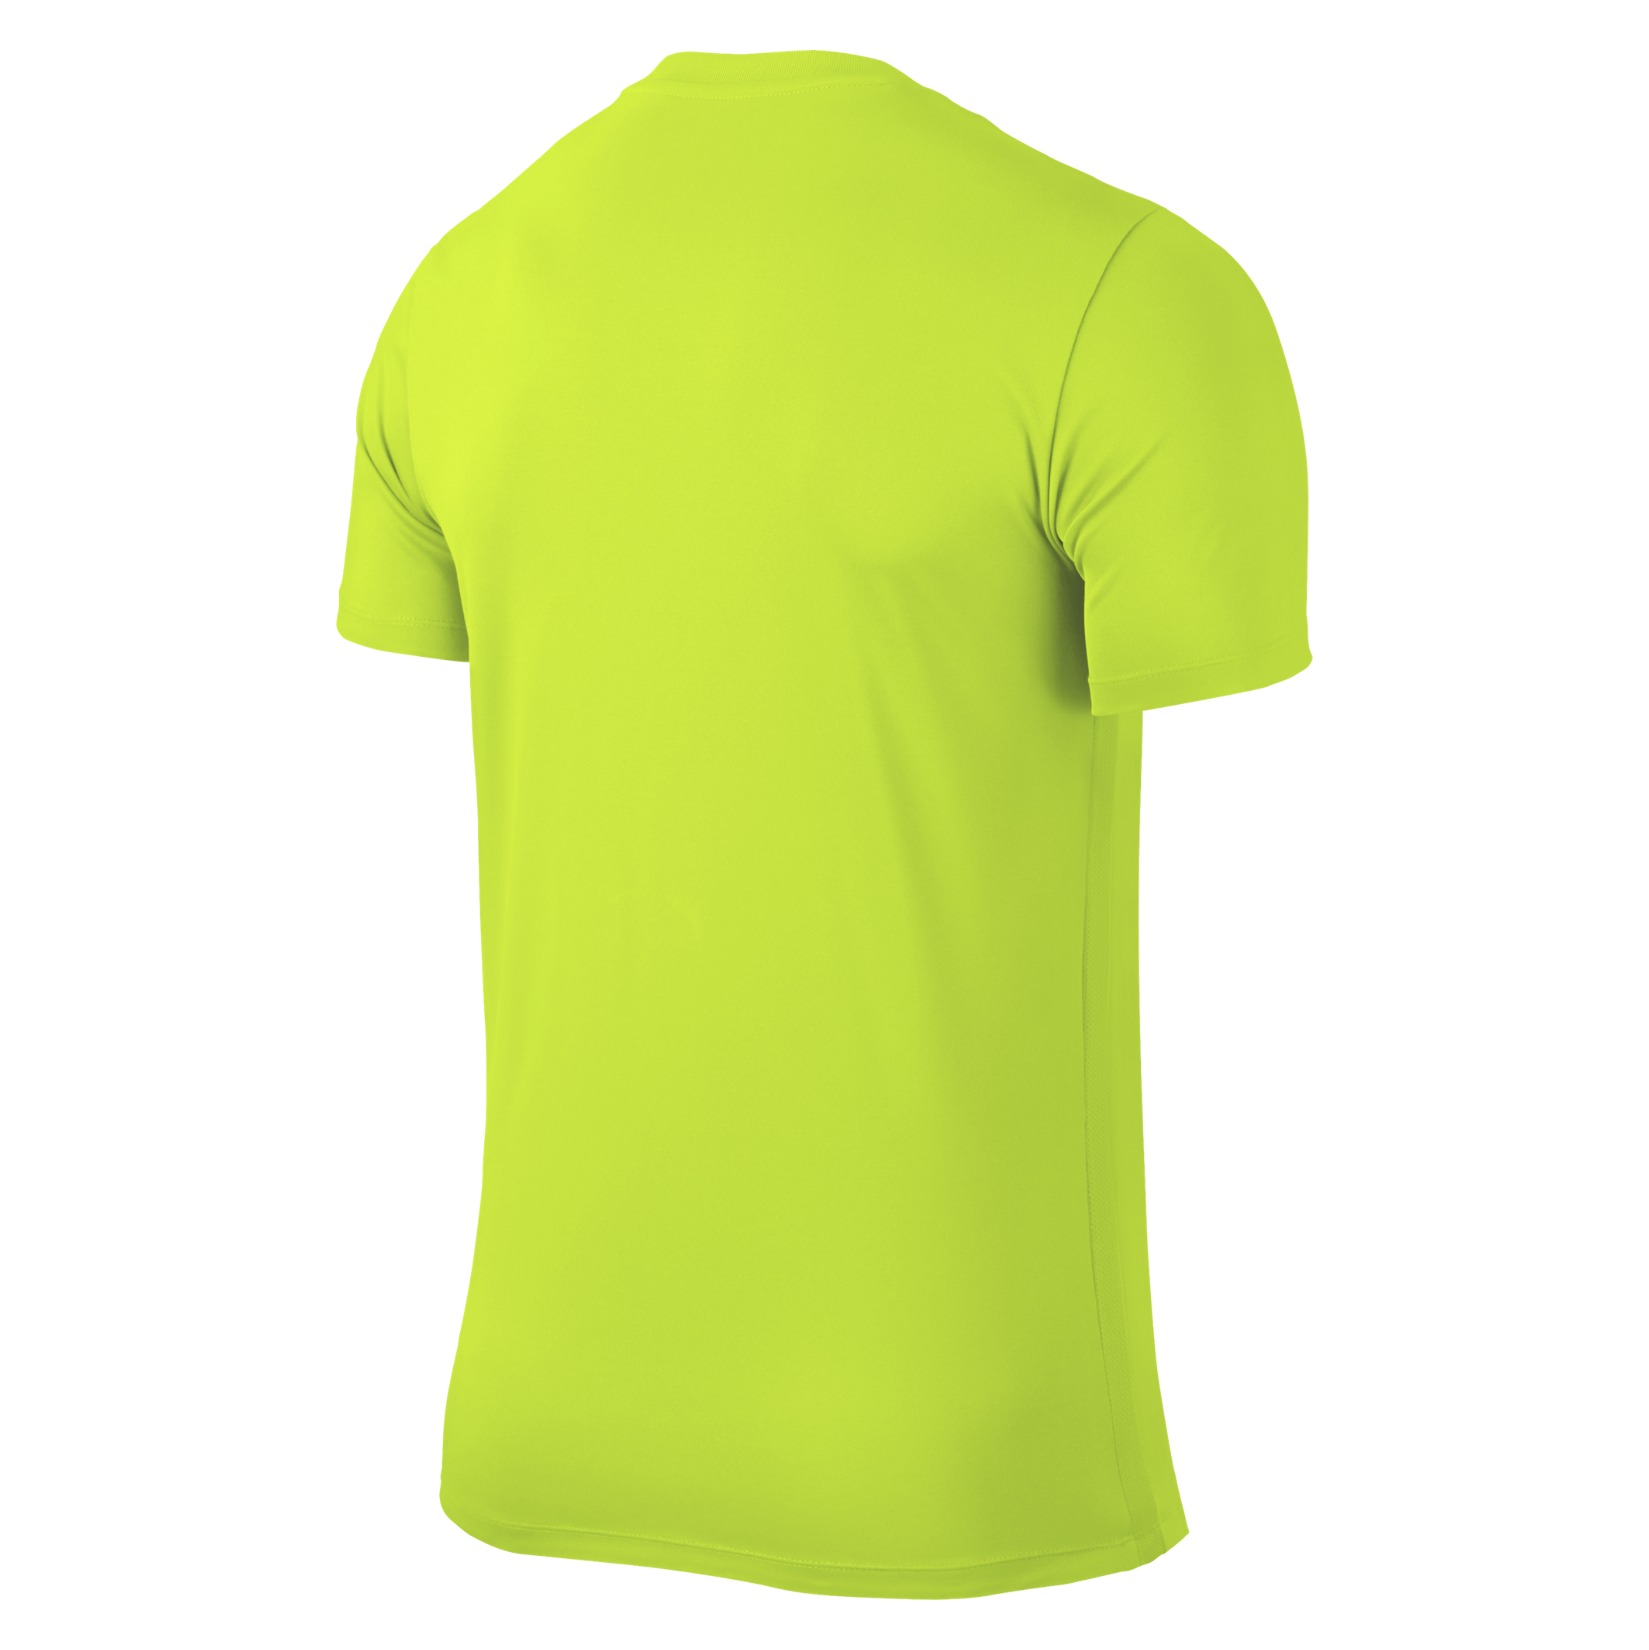 Nike Park VI Short Sleeve Shirt Volt-Black